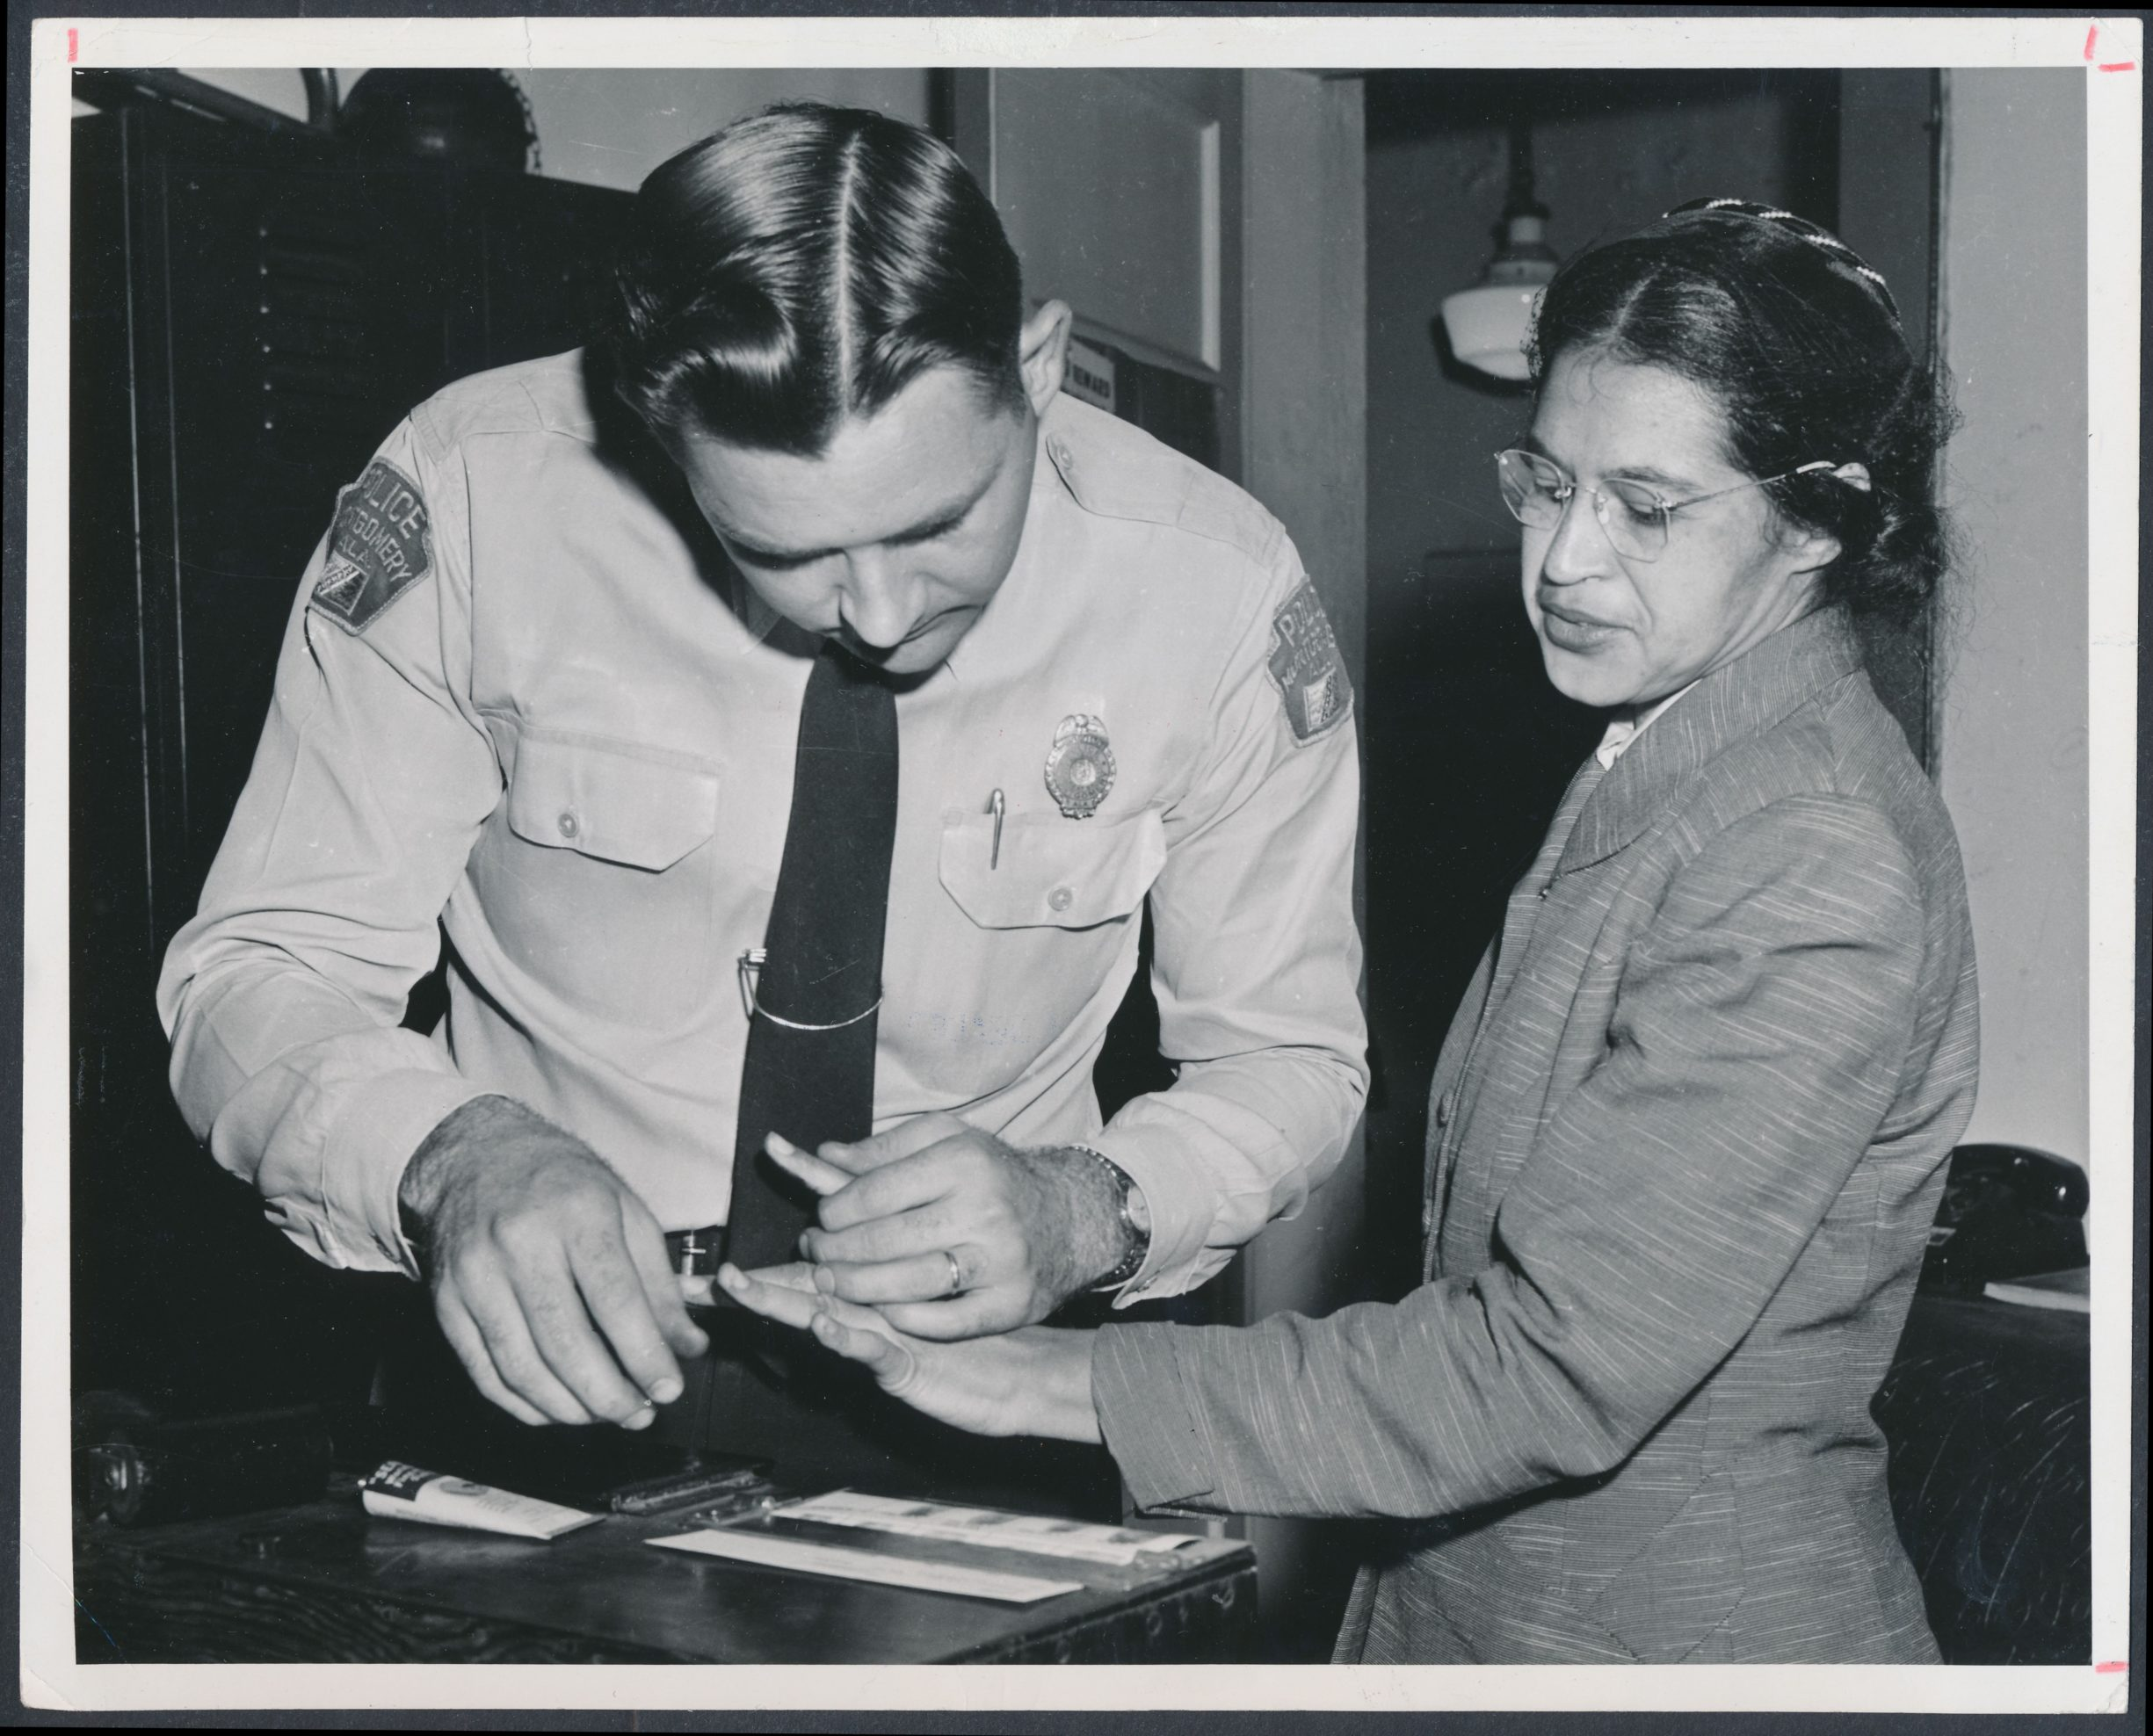 Rosa Parks being fingerprinted on February 22, 1956, by Deputy Sheriff D.H. Lackey as one of the people indicted as leaders of the Montgomery bus boycott. She was one of 73 people rounded up by deputies that day after a grand jury charged 113 African Americans for organizing the boycott. This was a few months after her arrest on December 1, 1955, for refusing to give up her seat to a white passenger on a segregated municipal bus in Montgomery, Alabama. Photo: Associated Press. Public domain.